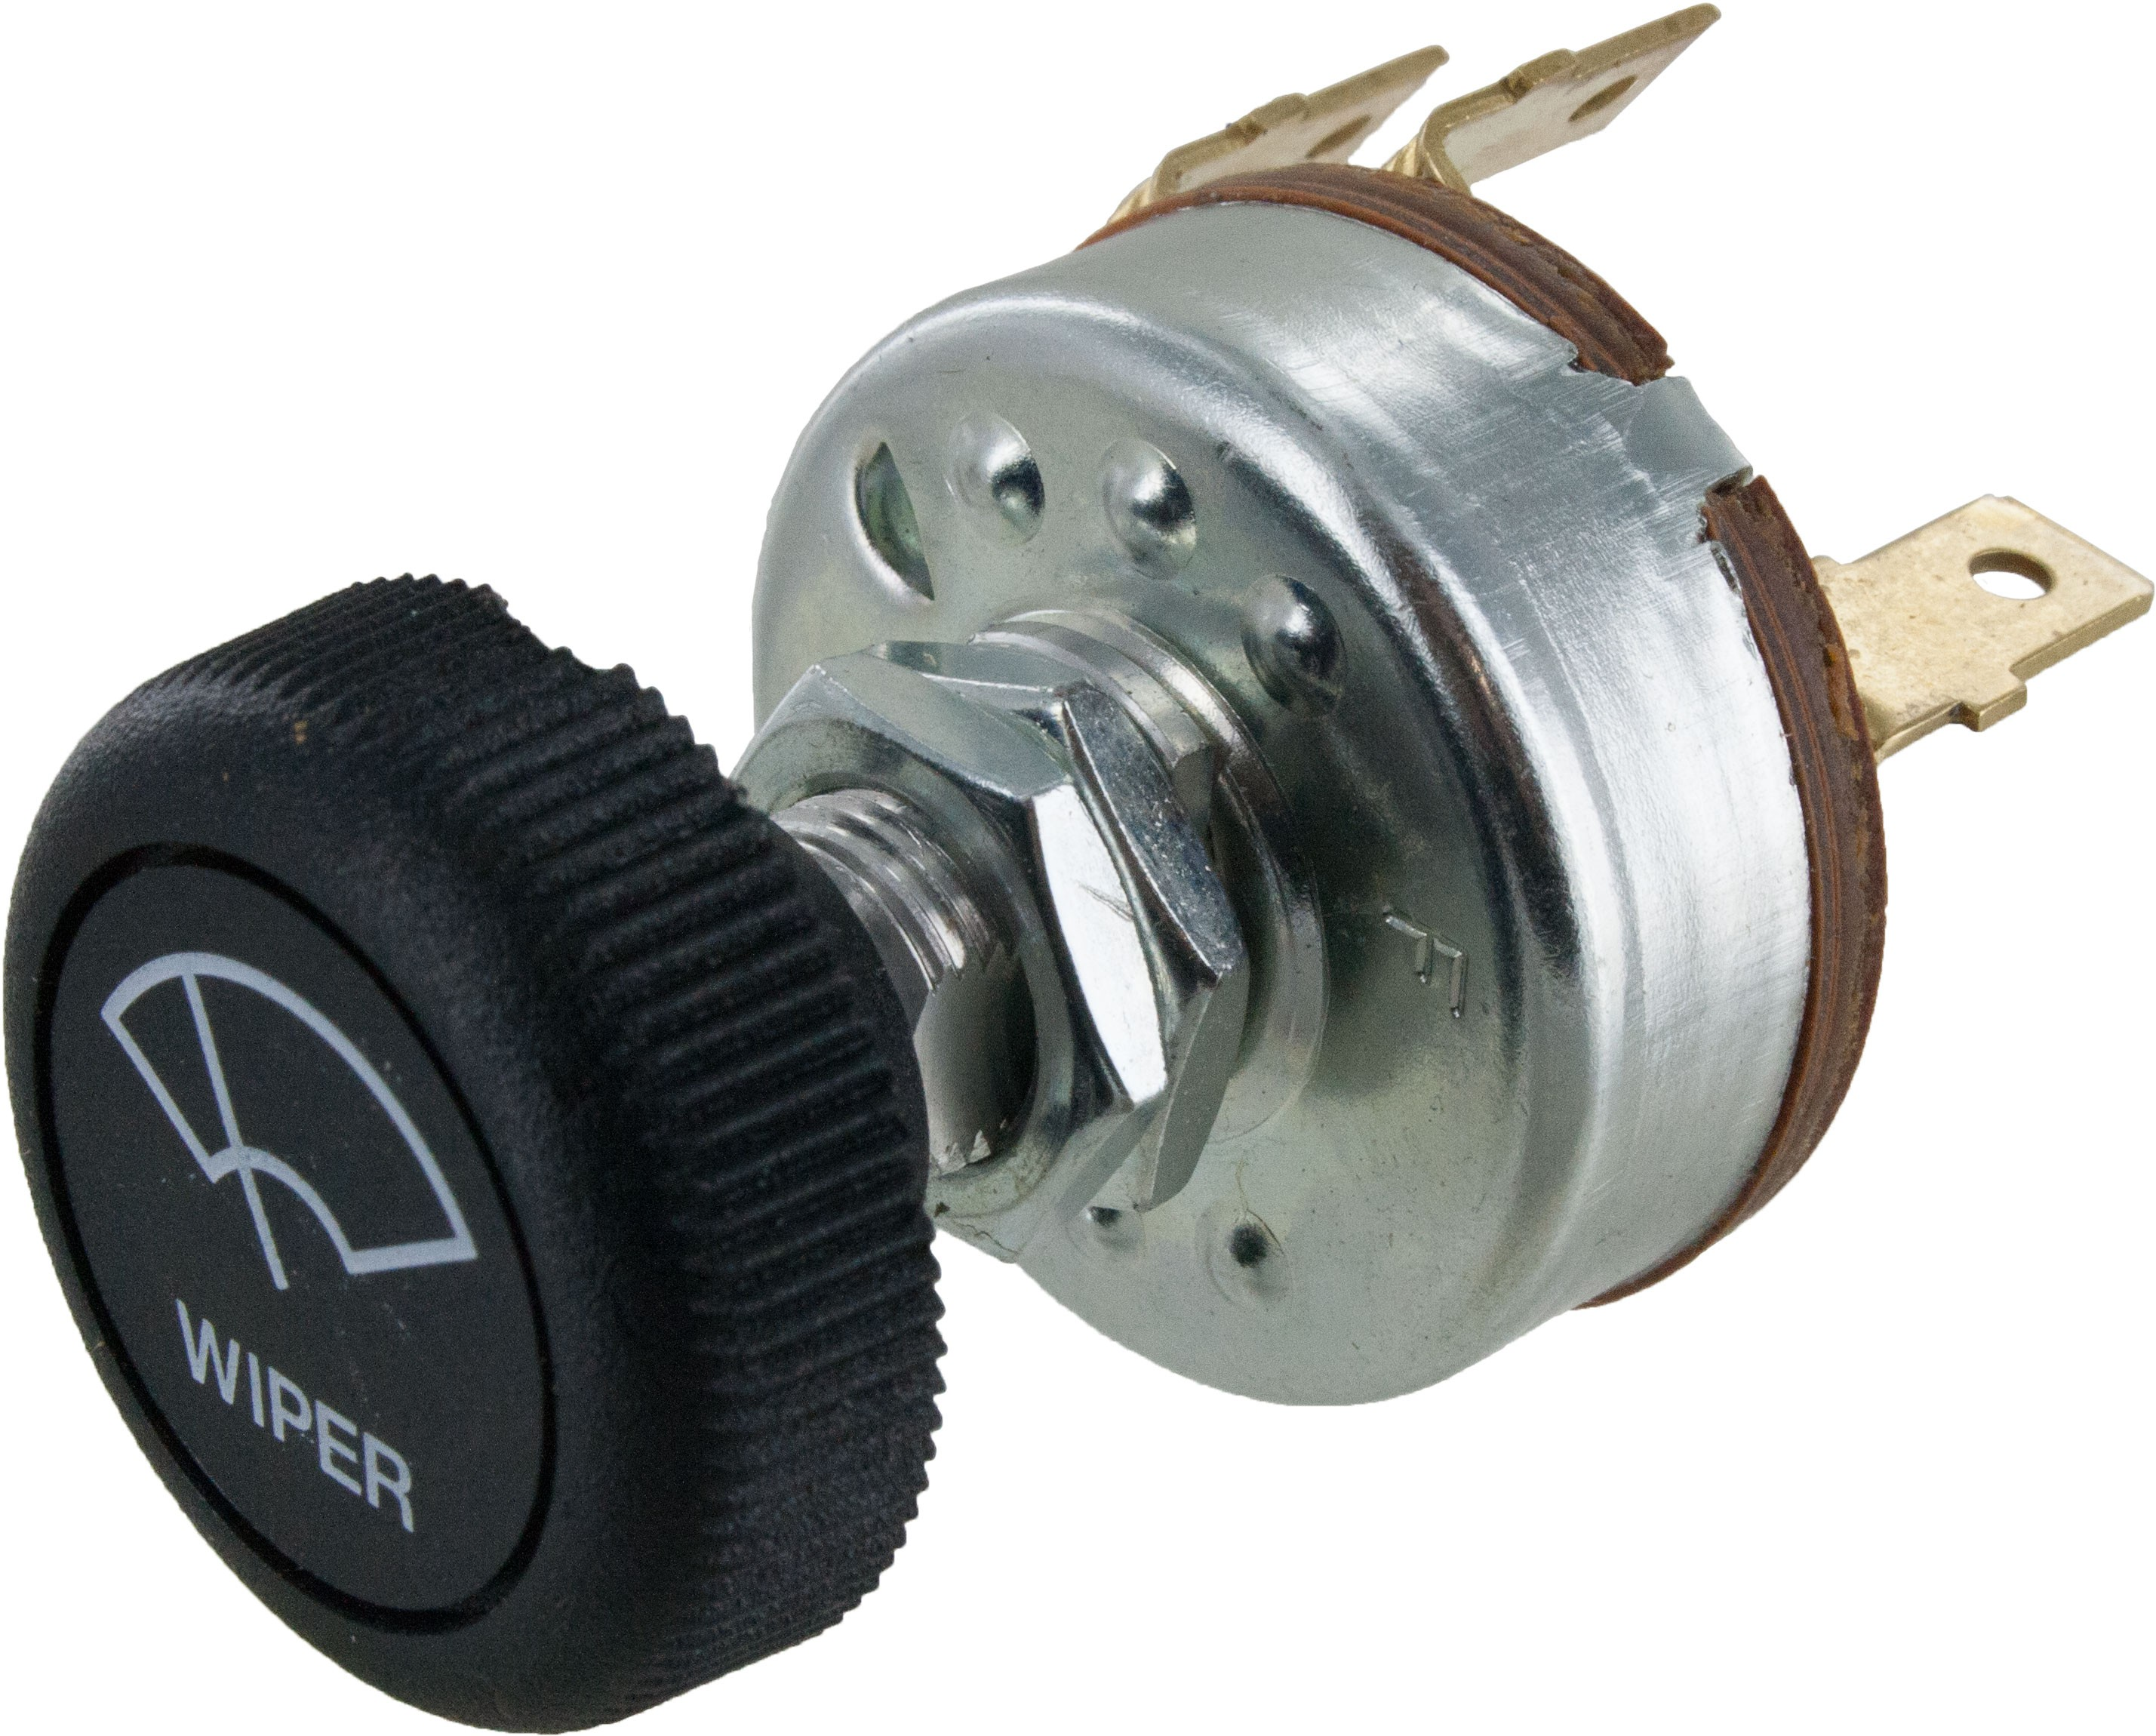 Cole Hersee 75212 04 Wiper Switch Elecdirect Pollak Lightduty Toggle Onoff 12 Volt 10 Amp 6quot Wire 3 Position Windshield 4 Blades